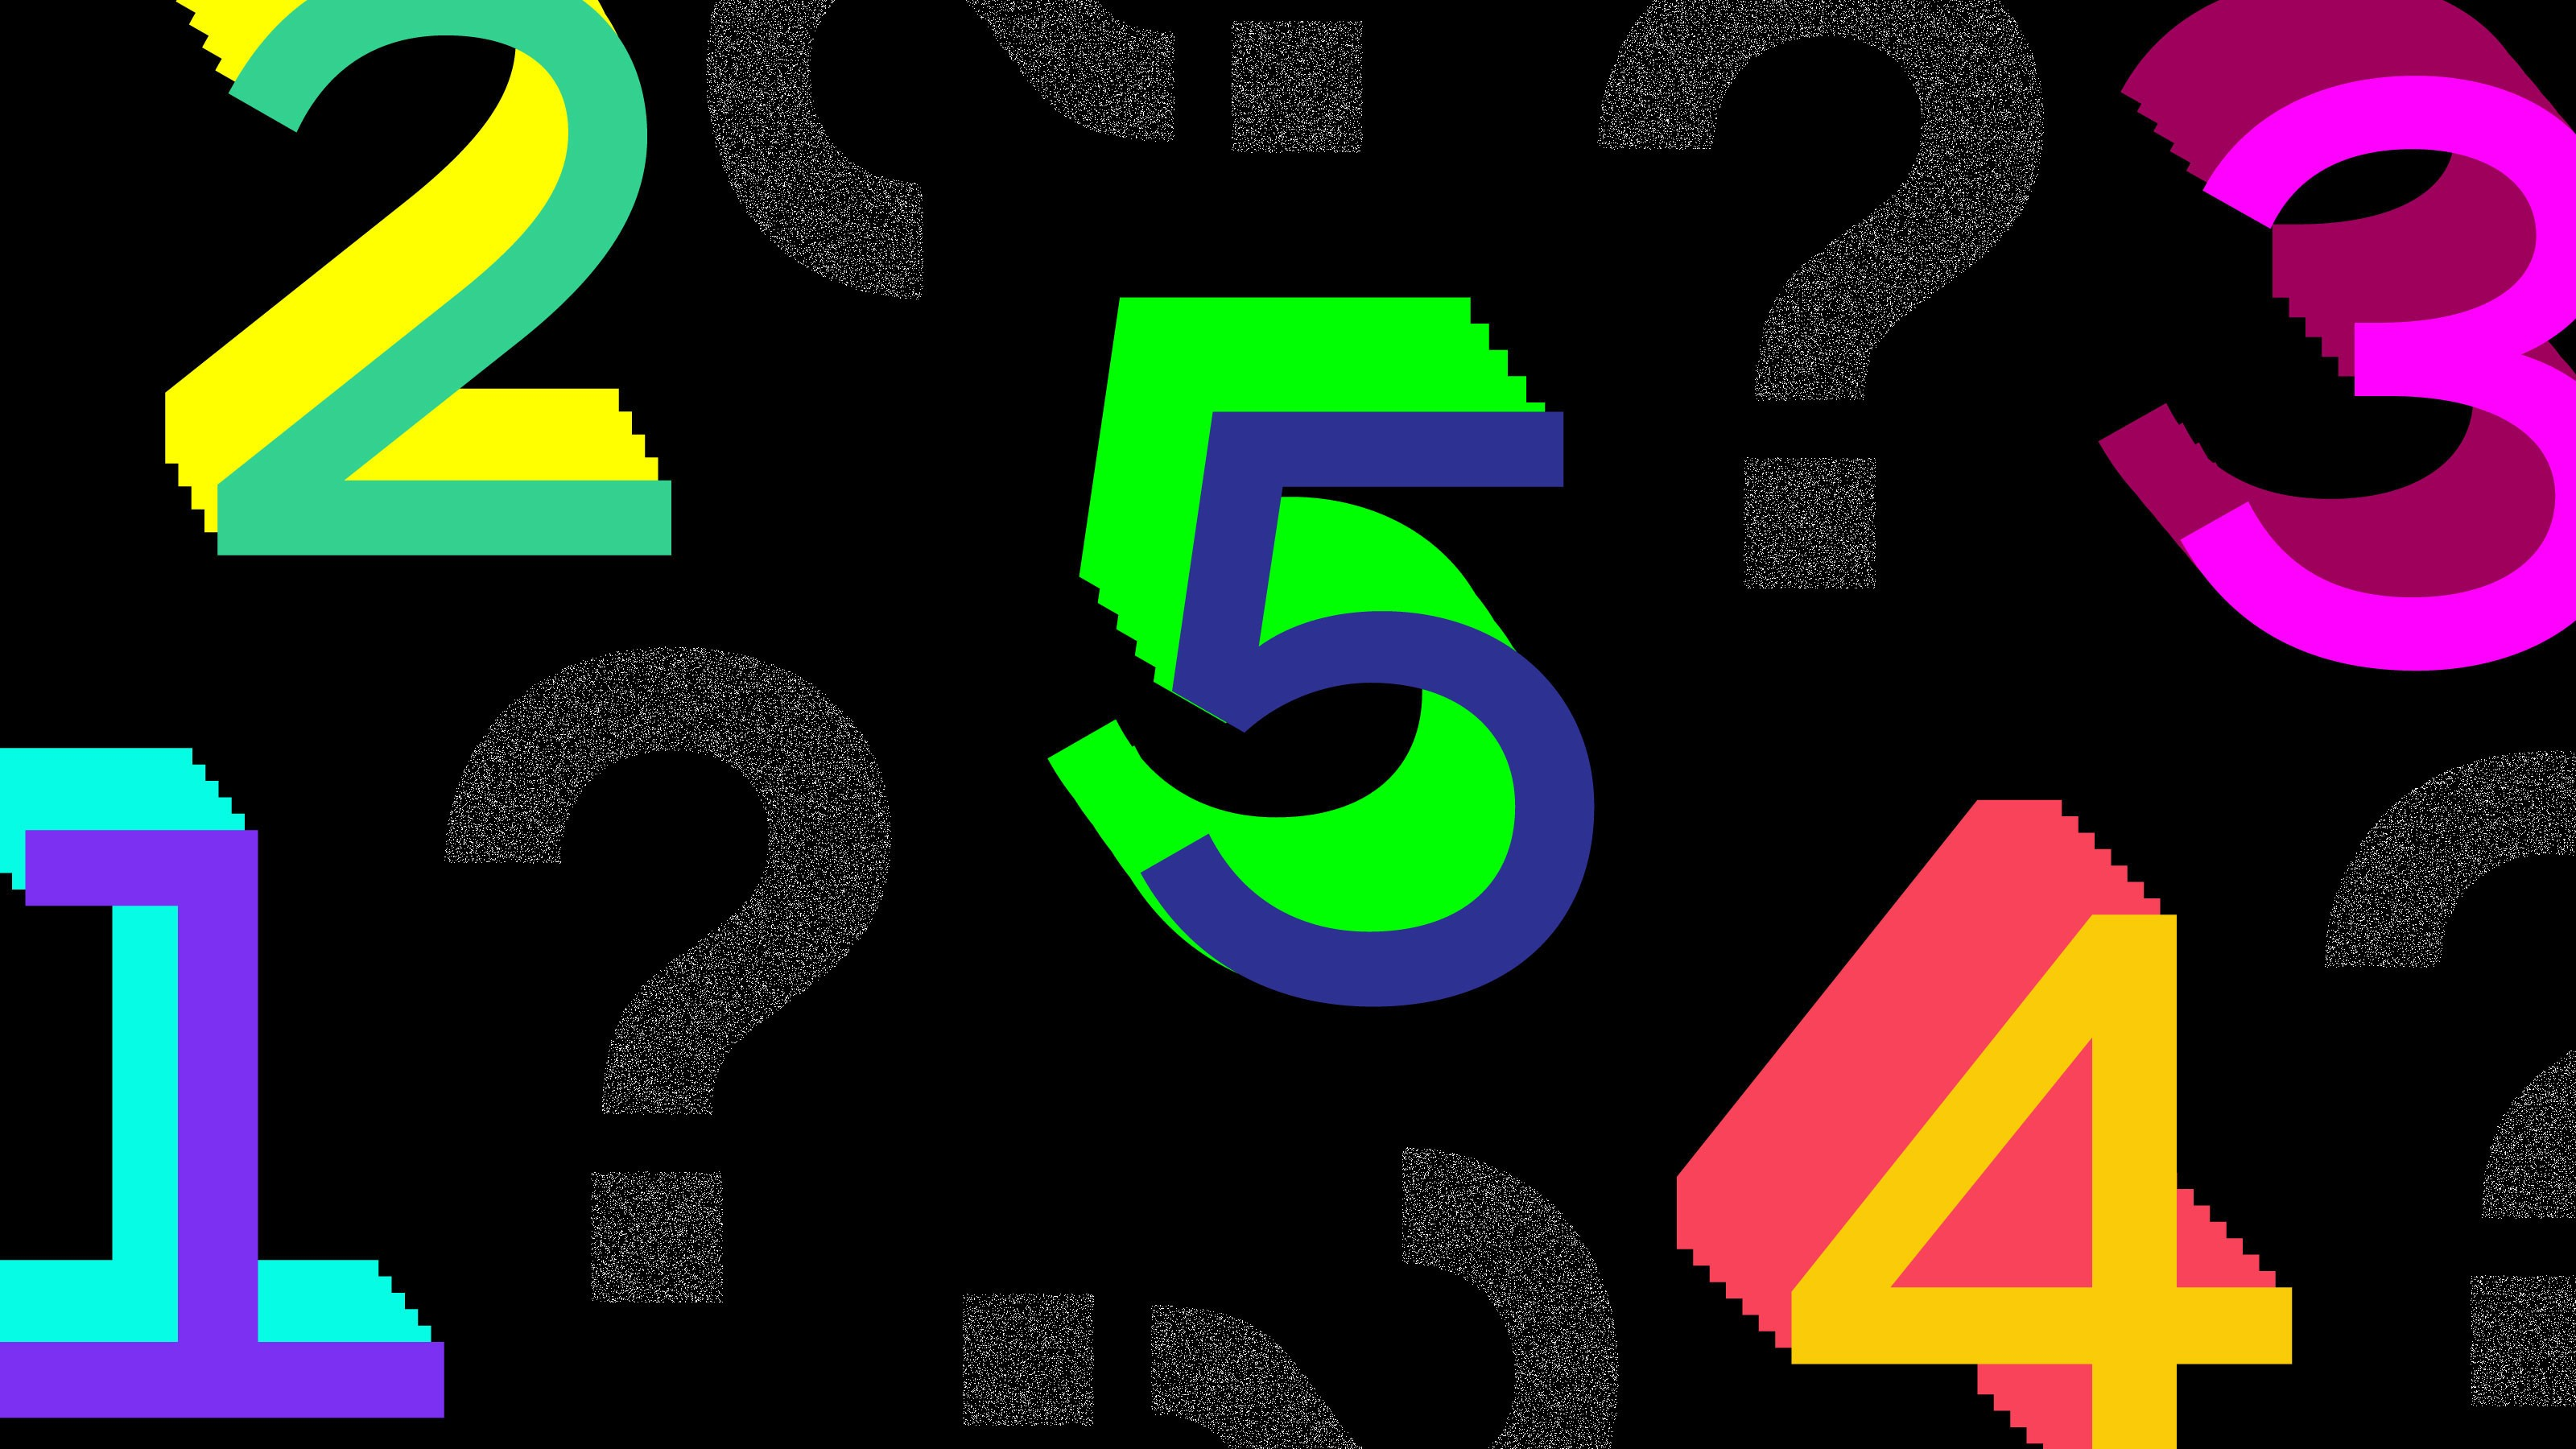 Five questions you can use to cut through AI hype